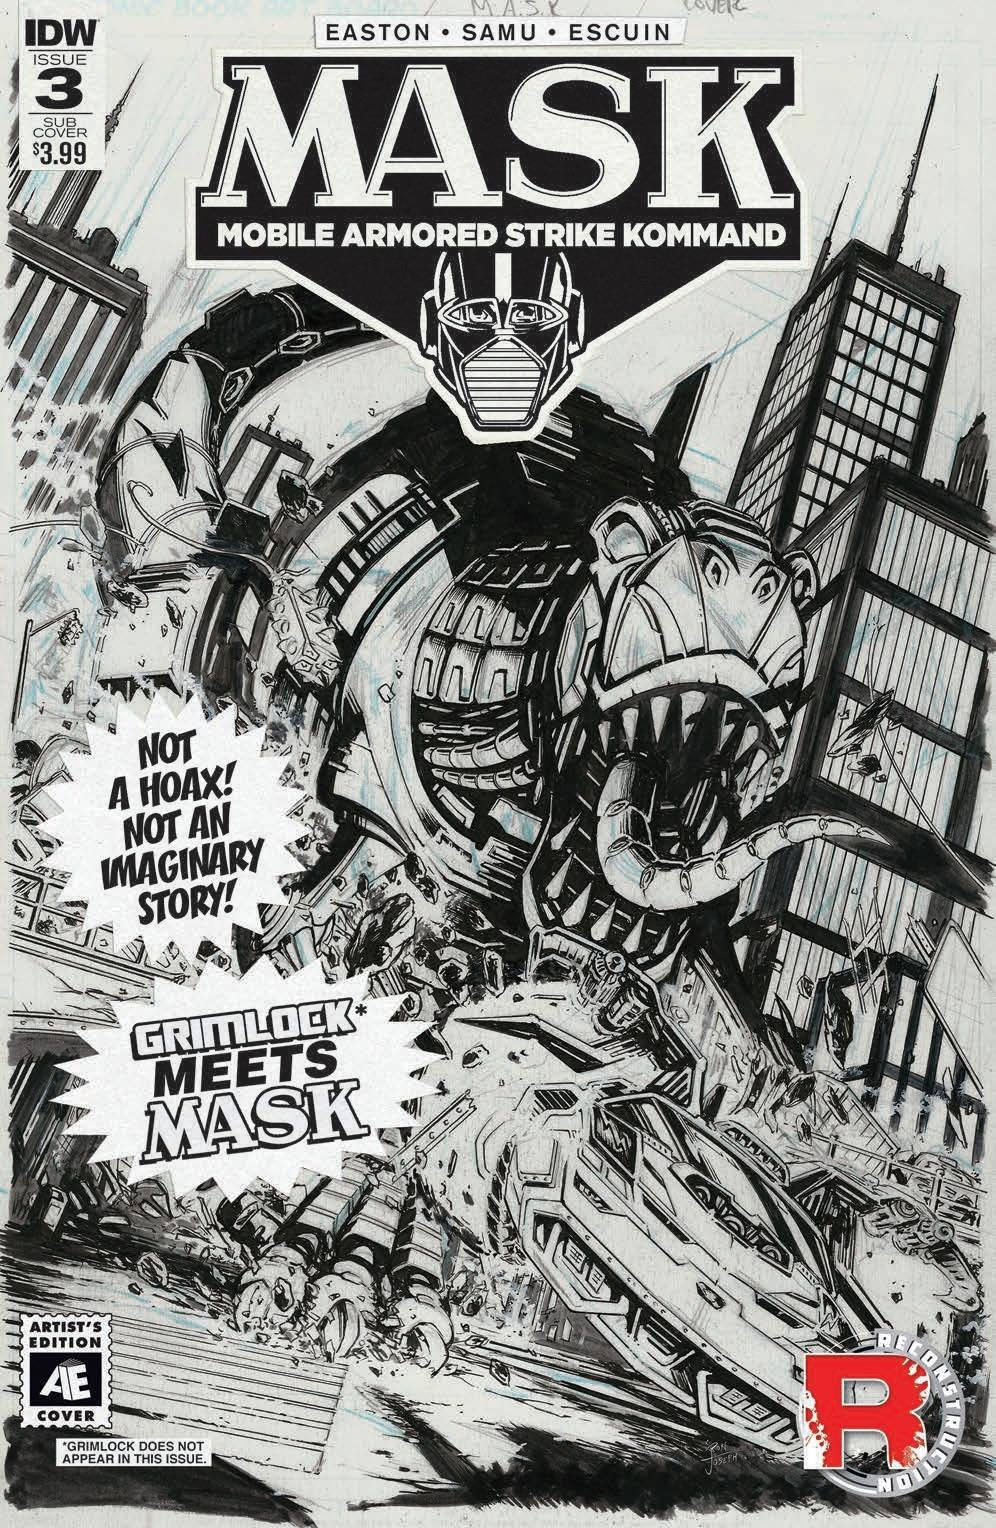 Transformers News: IDW M.A.S.K. #3 Artist Edition Grimlock Variant Cover by Ron Joseph